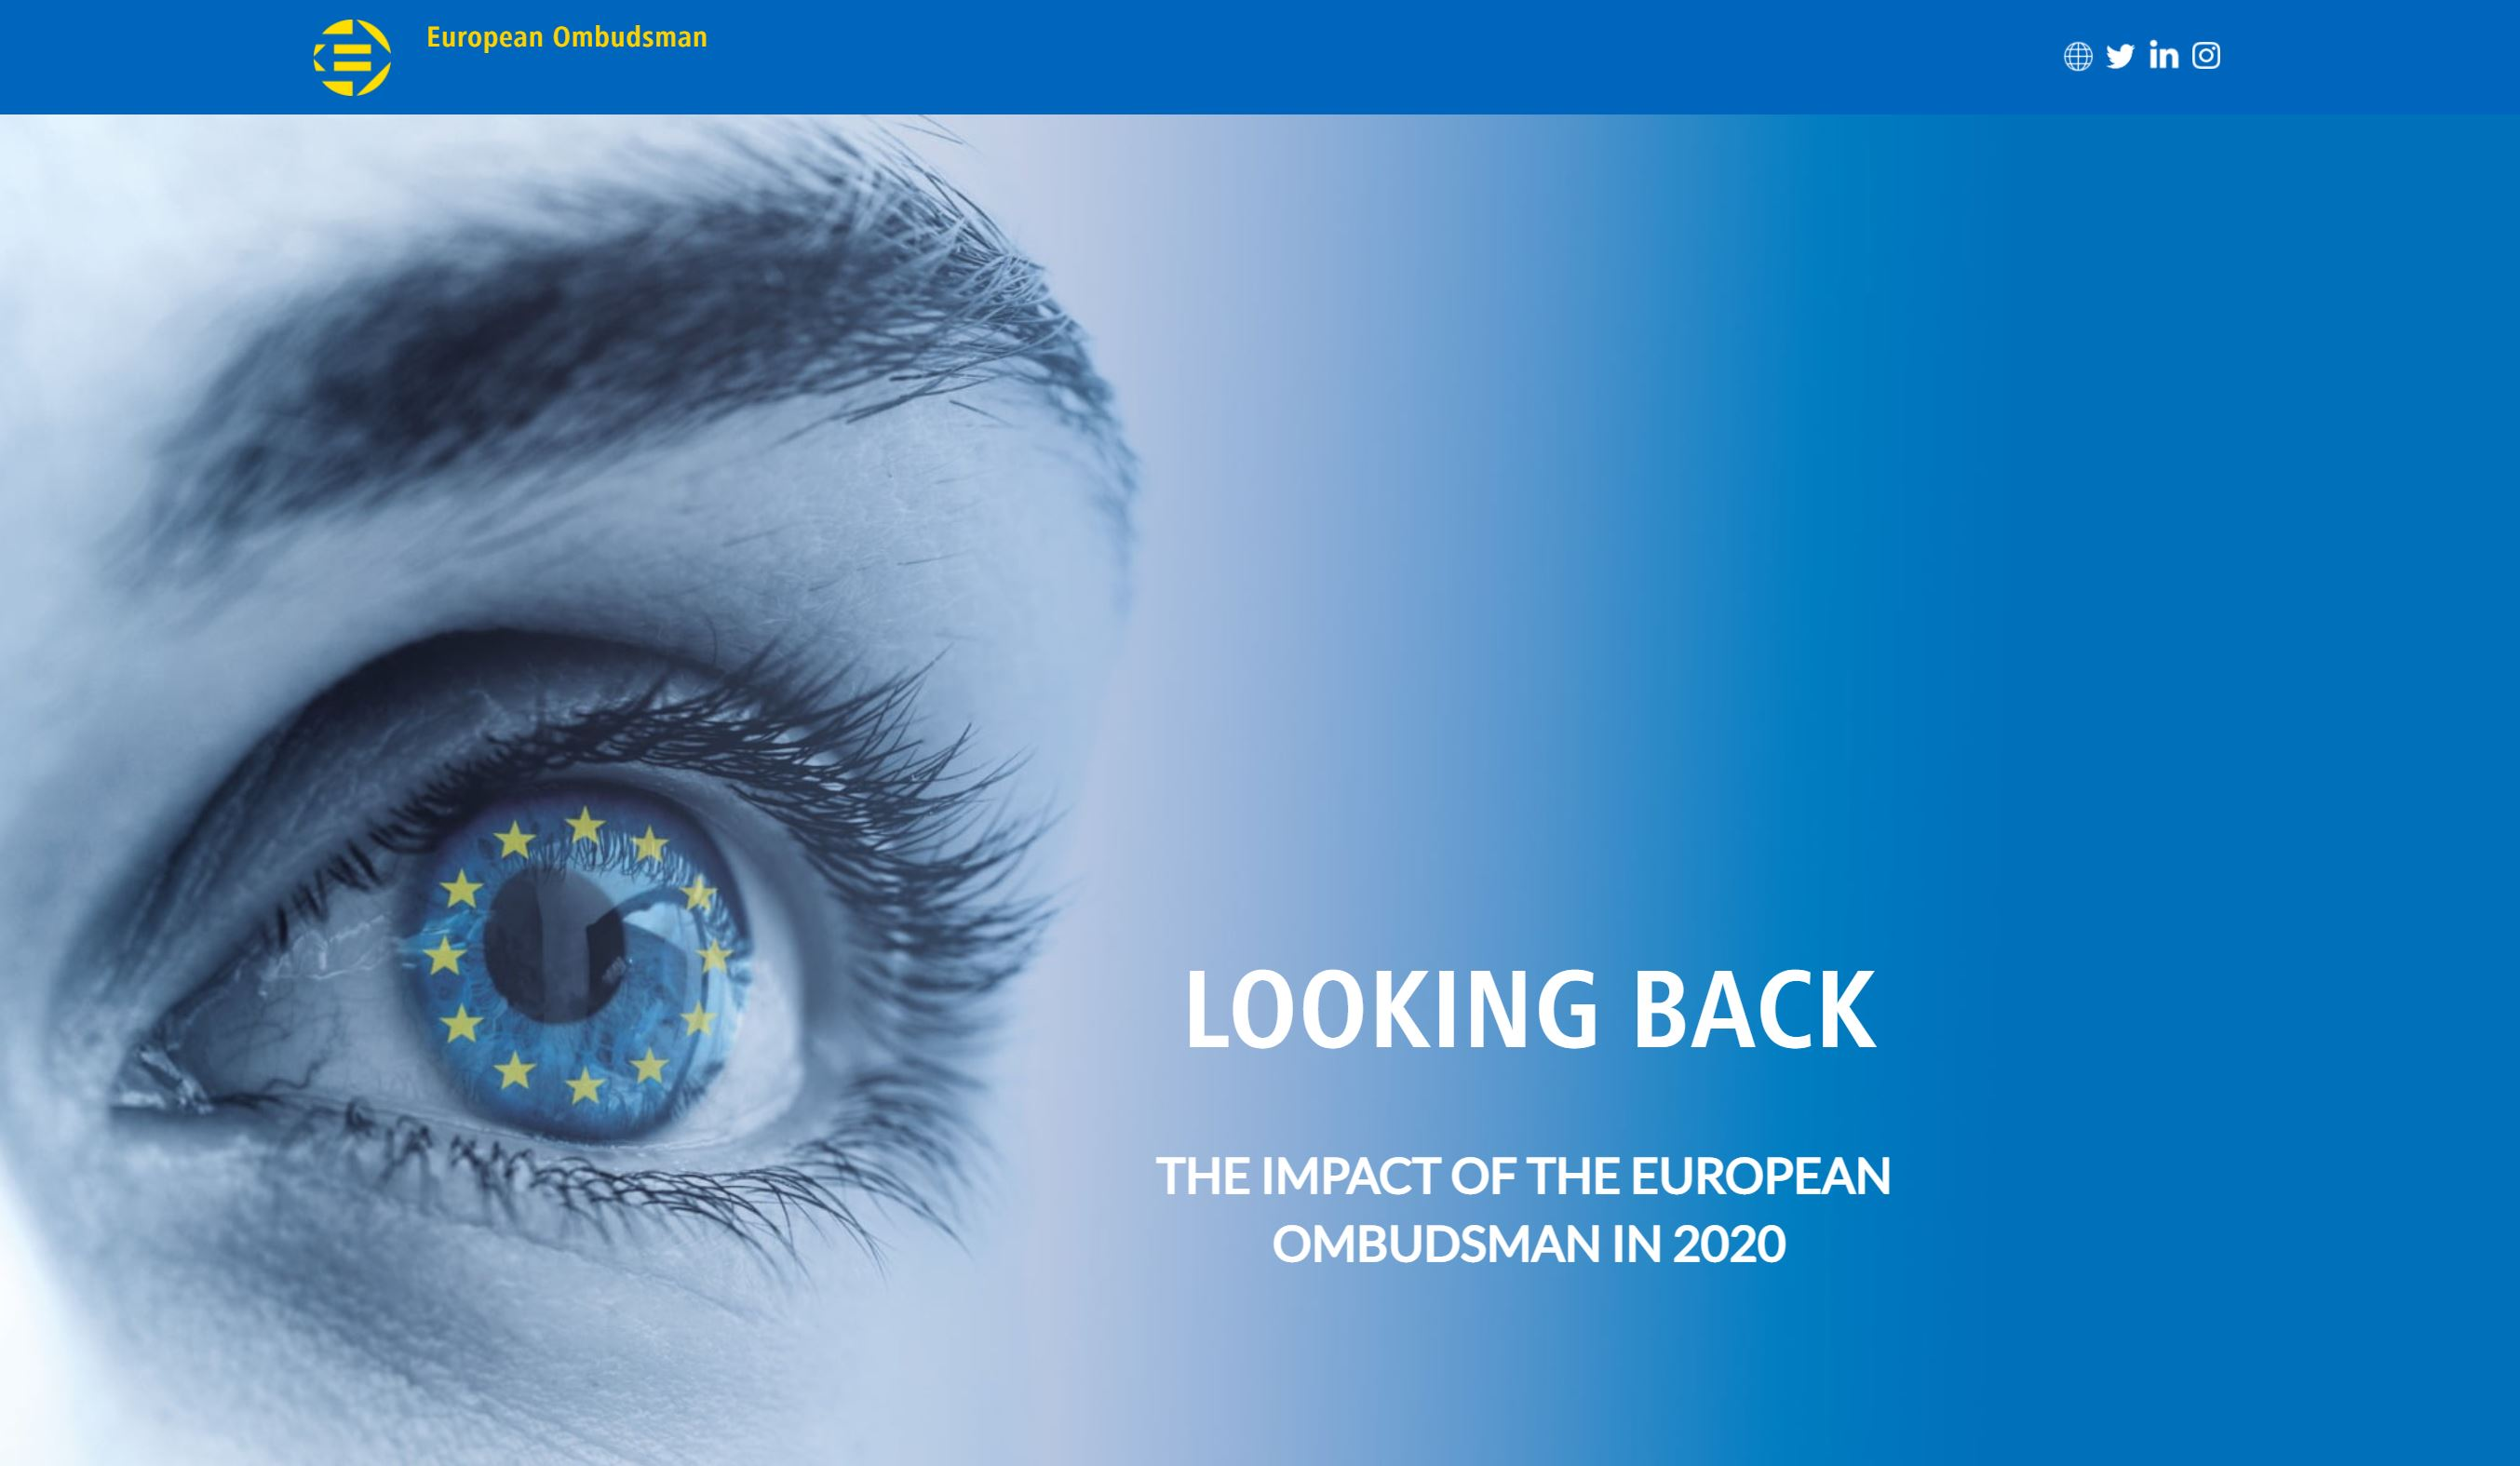 Looking Back - The impact of the European Ombudsman in 2020